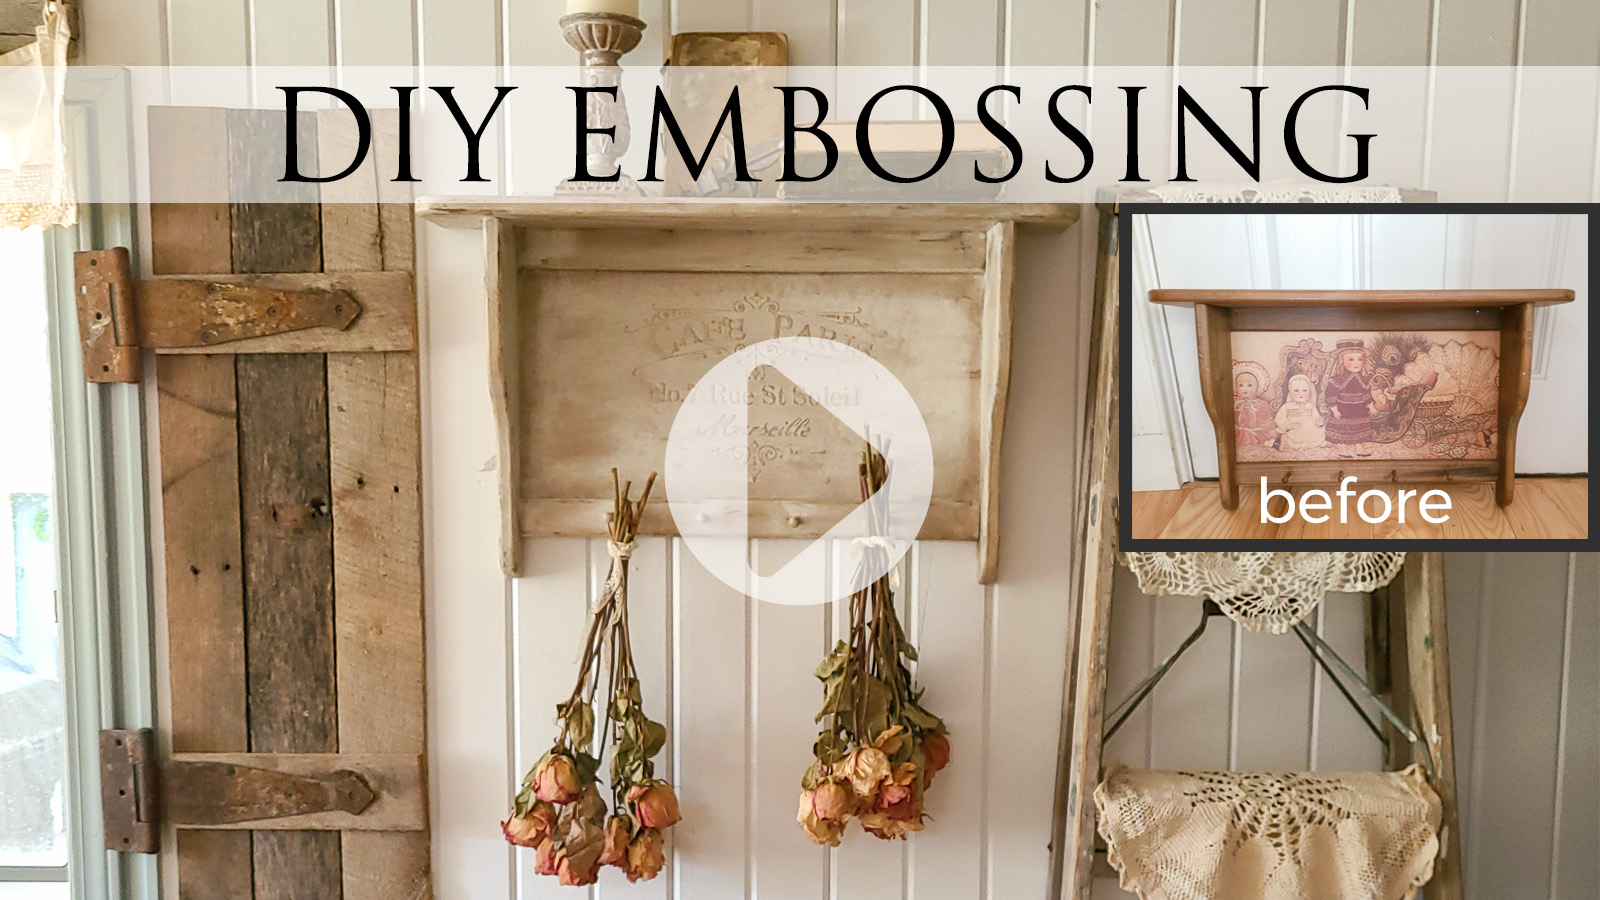 DIY Embossing using basic supplies | Video Tutorial by Larissa of Prodigal Pieces | prodigalpieces.com #prodigalpieces